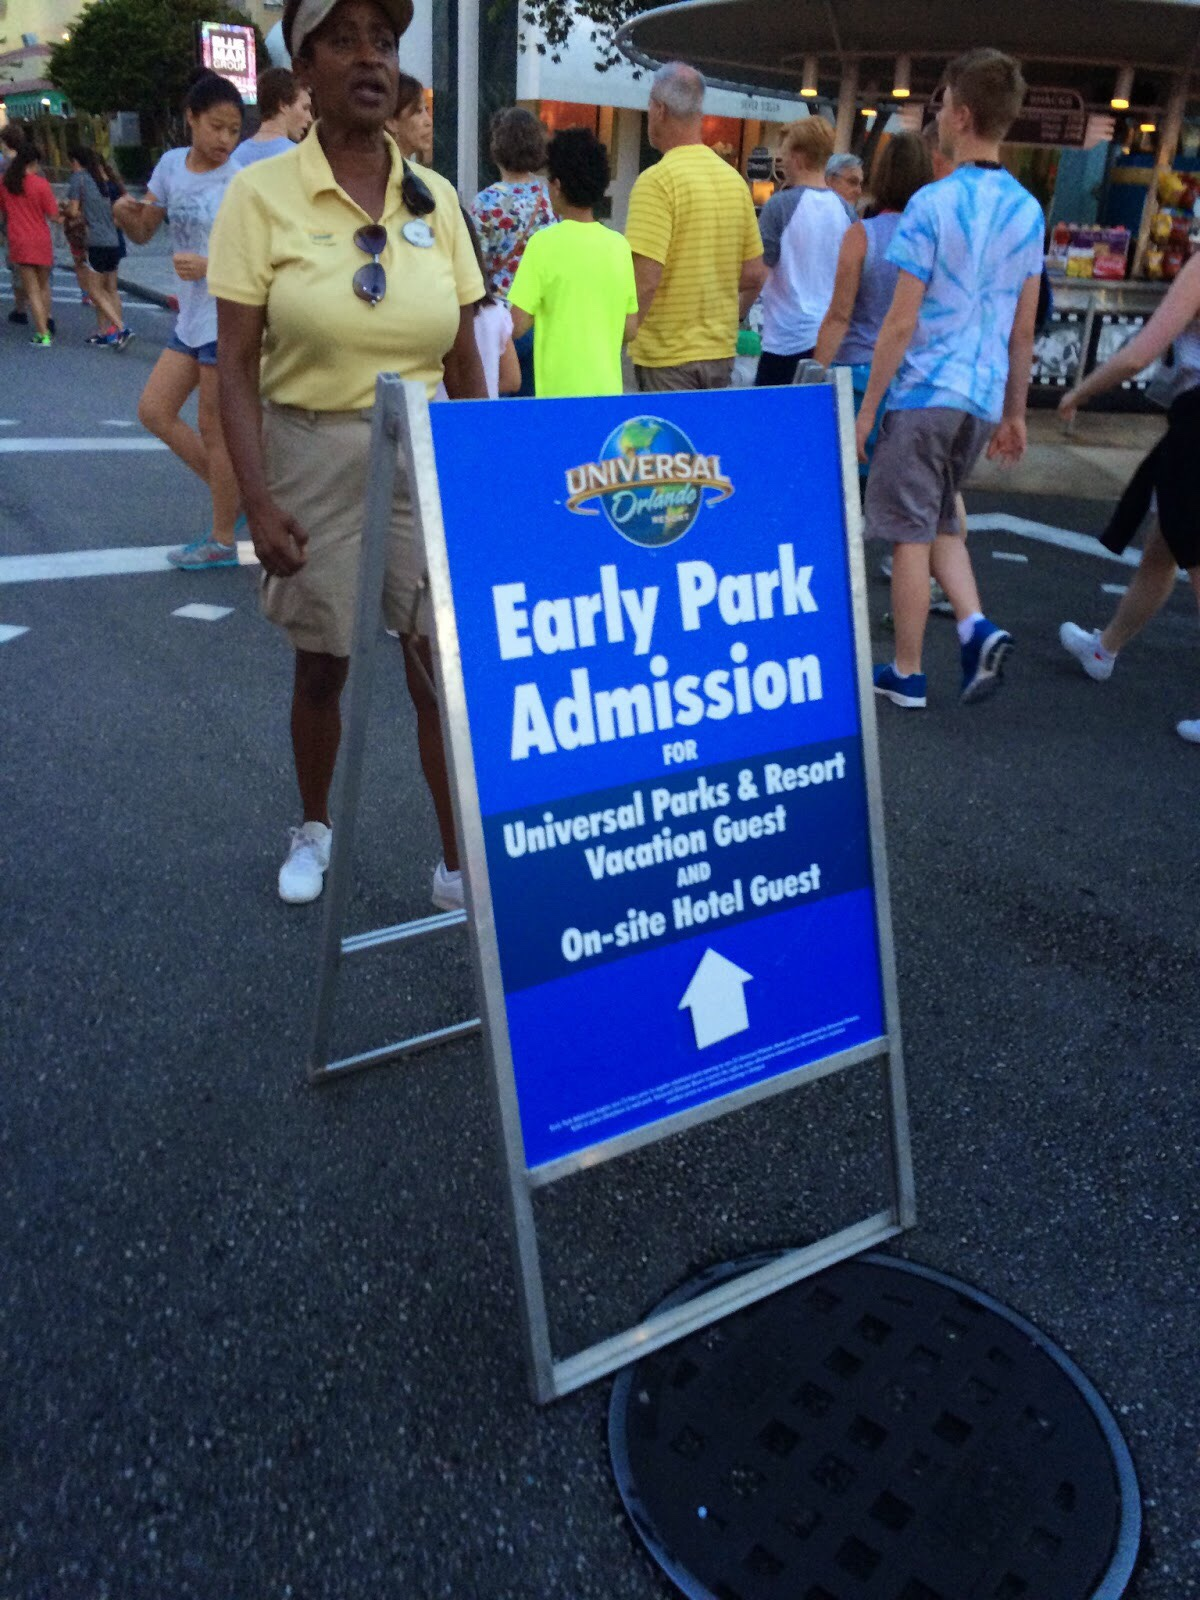 Universal Orlando Early Park Admission IOA